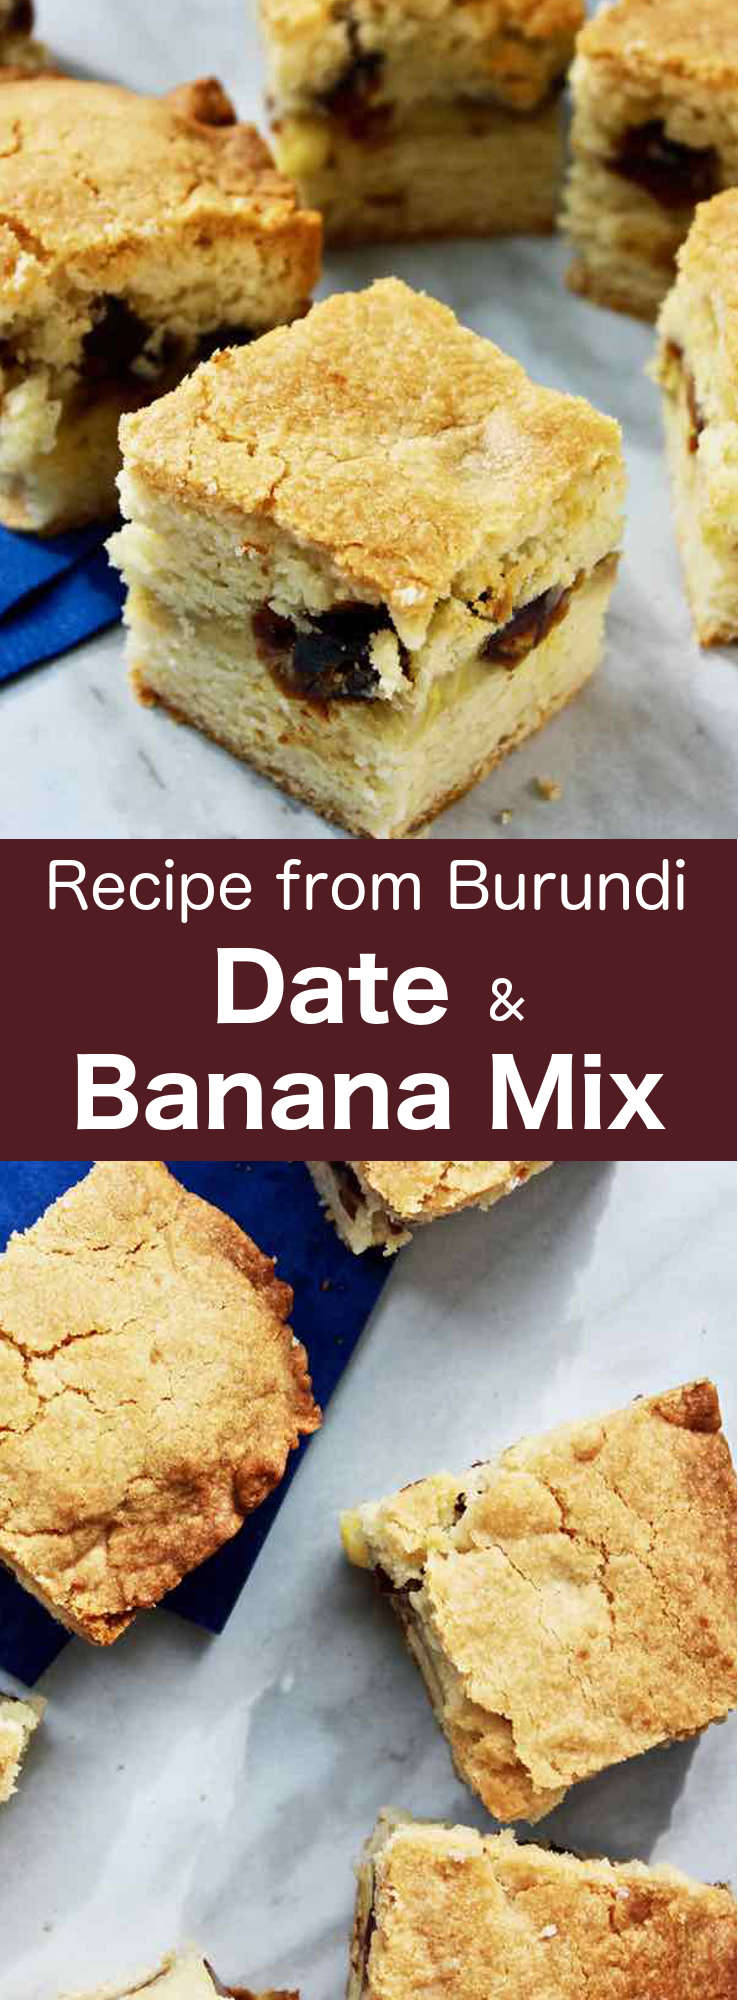 Date and banana mix is an easy to make traditional cake from Burundi that is best served warm. #Burundi #cake #Africa #196flavors